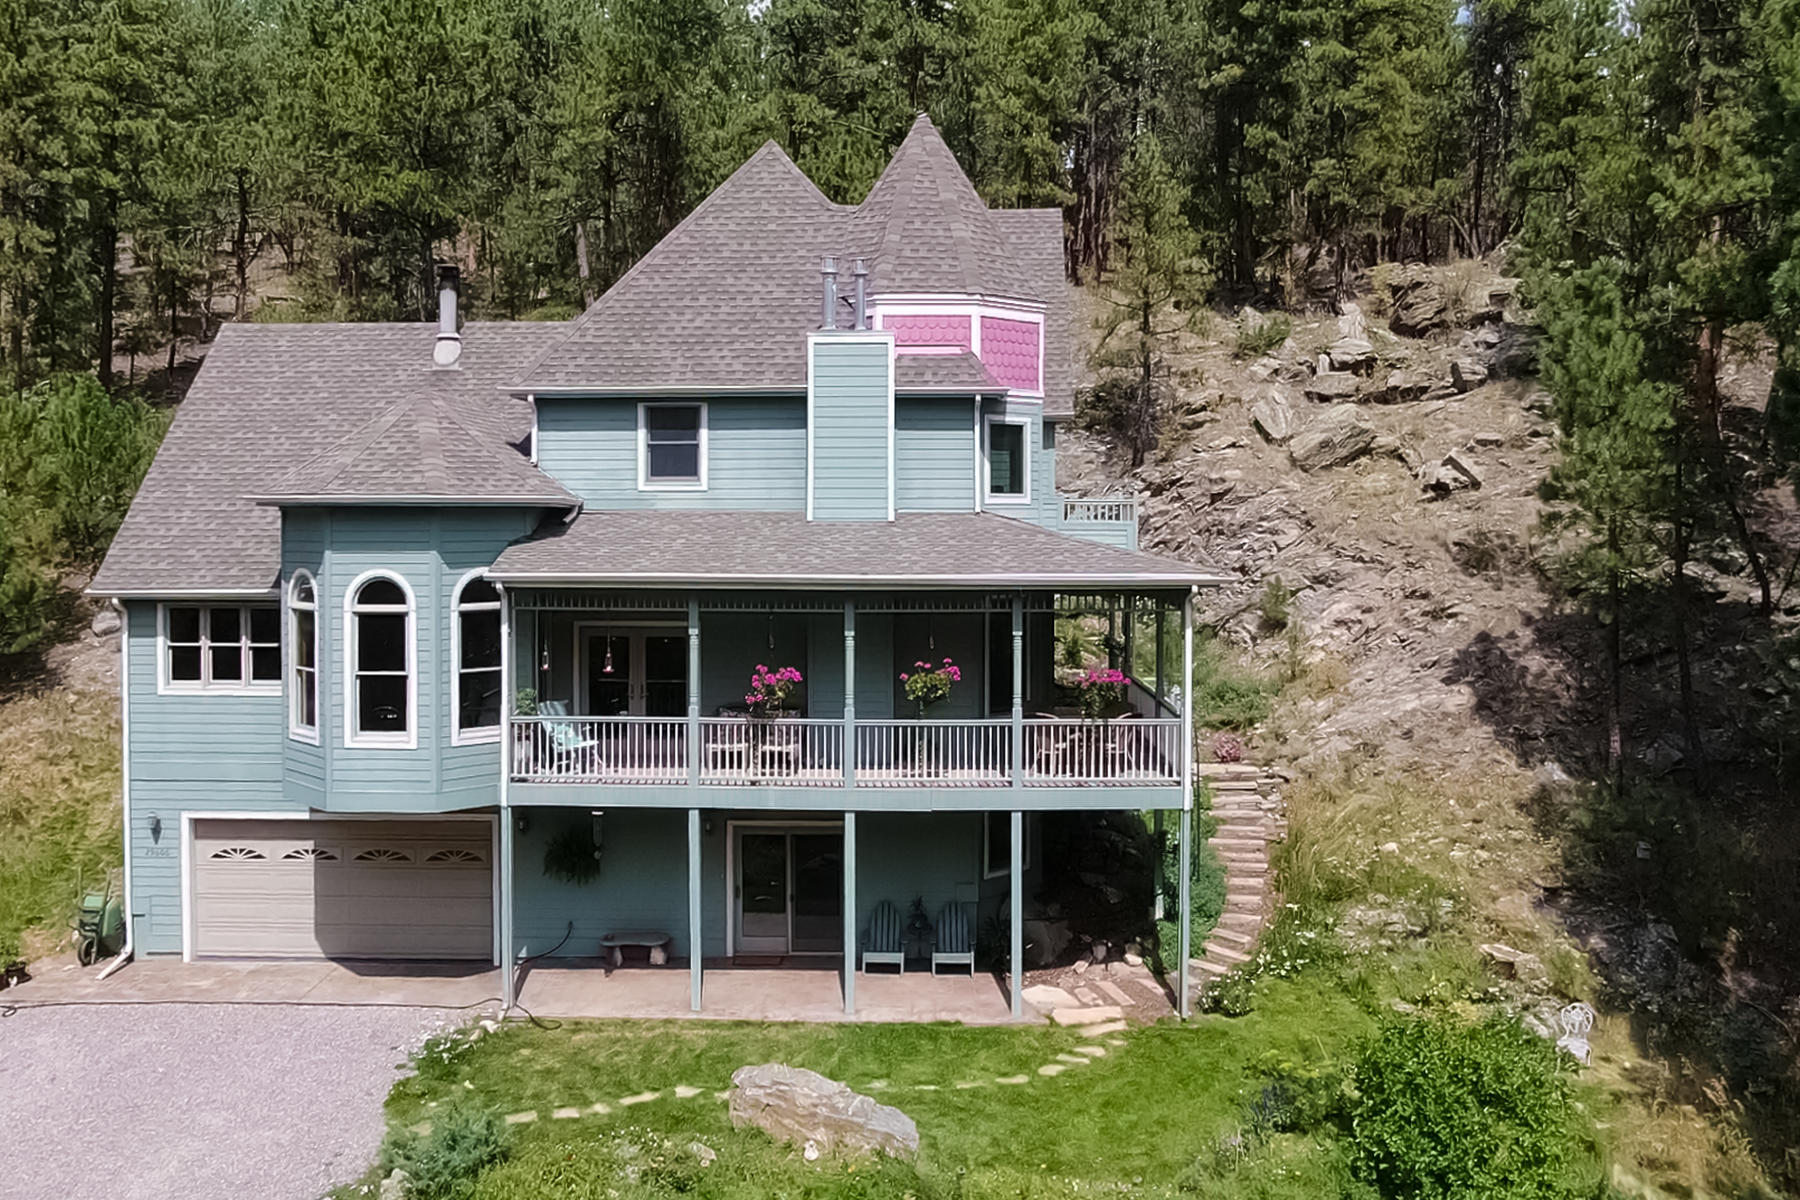 Casa unifamiliar en venta en/de 29606 Larkspur, Evergreen, Colorado ,80439  , EUA